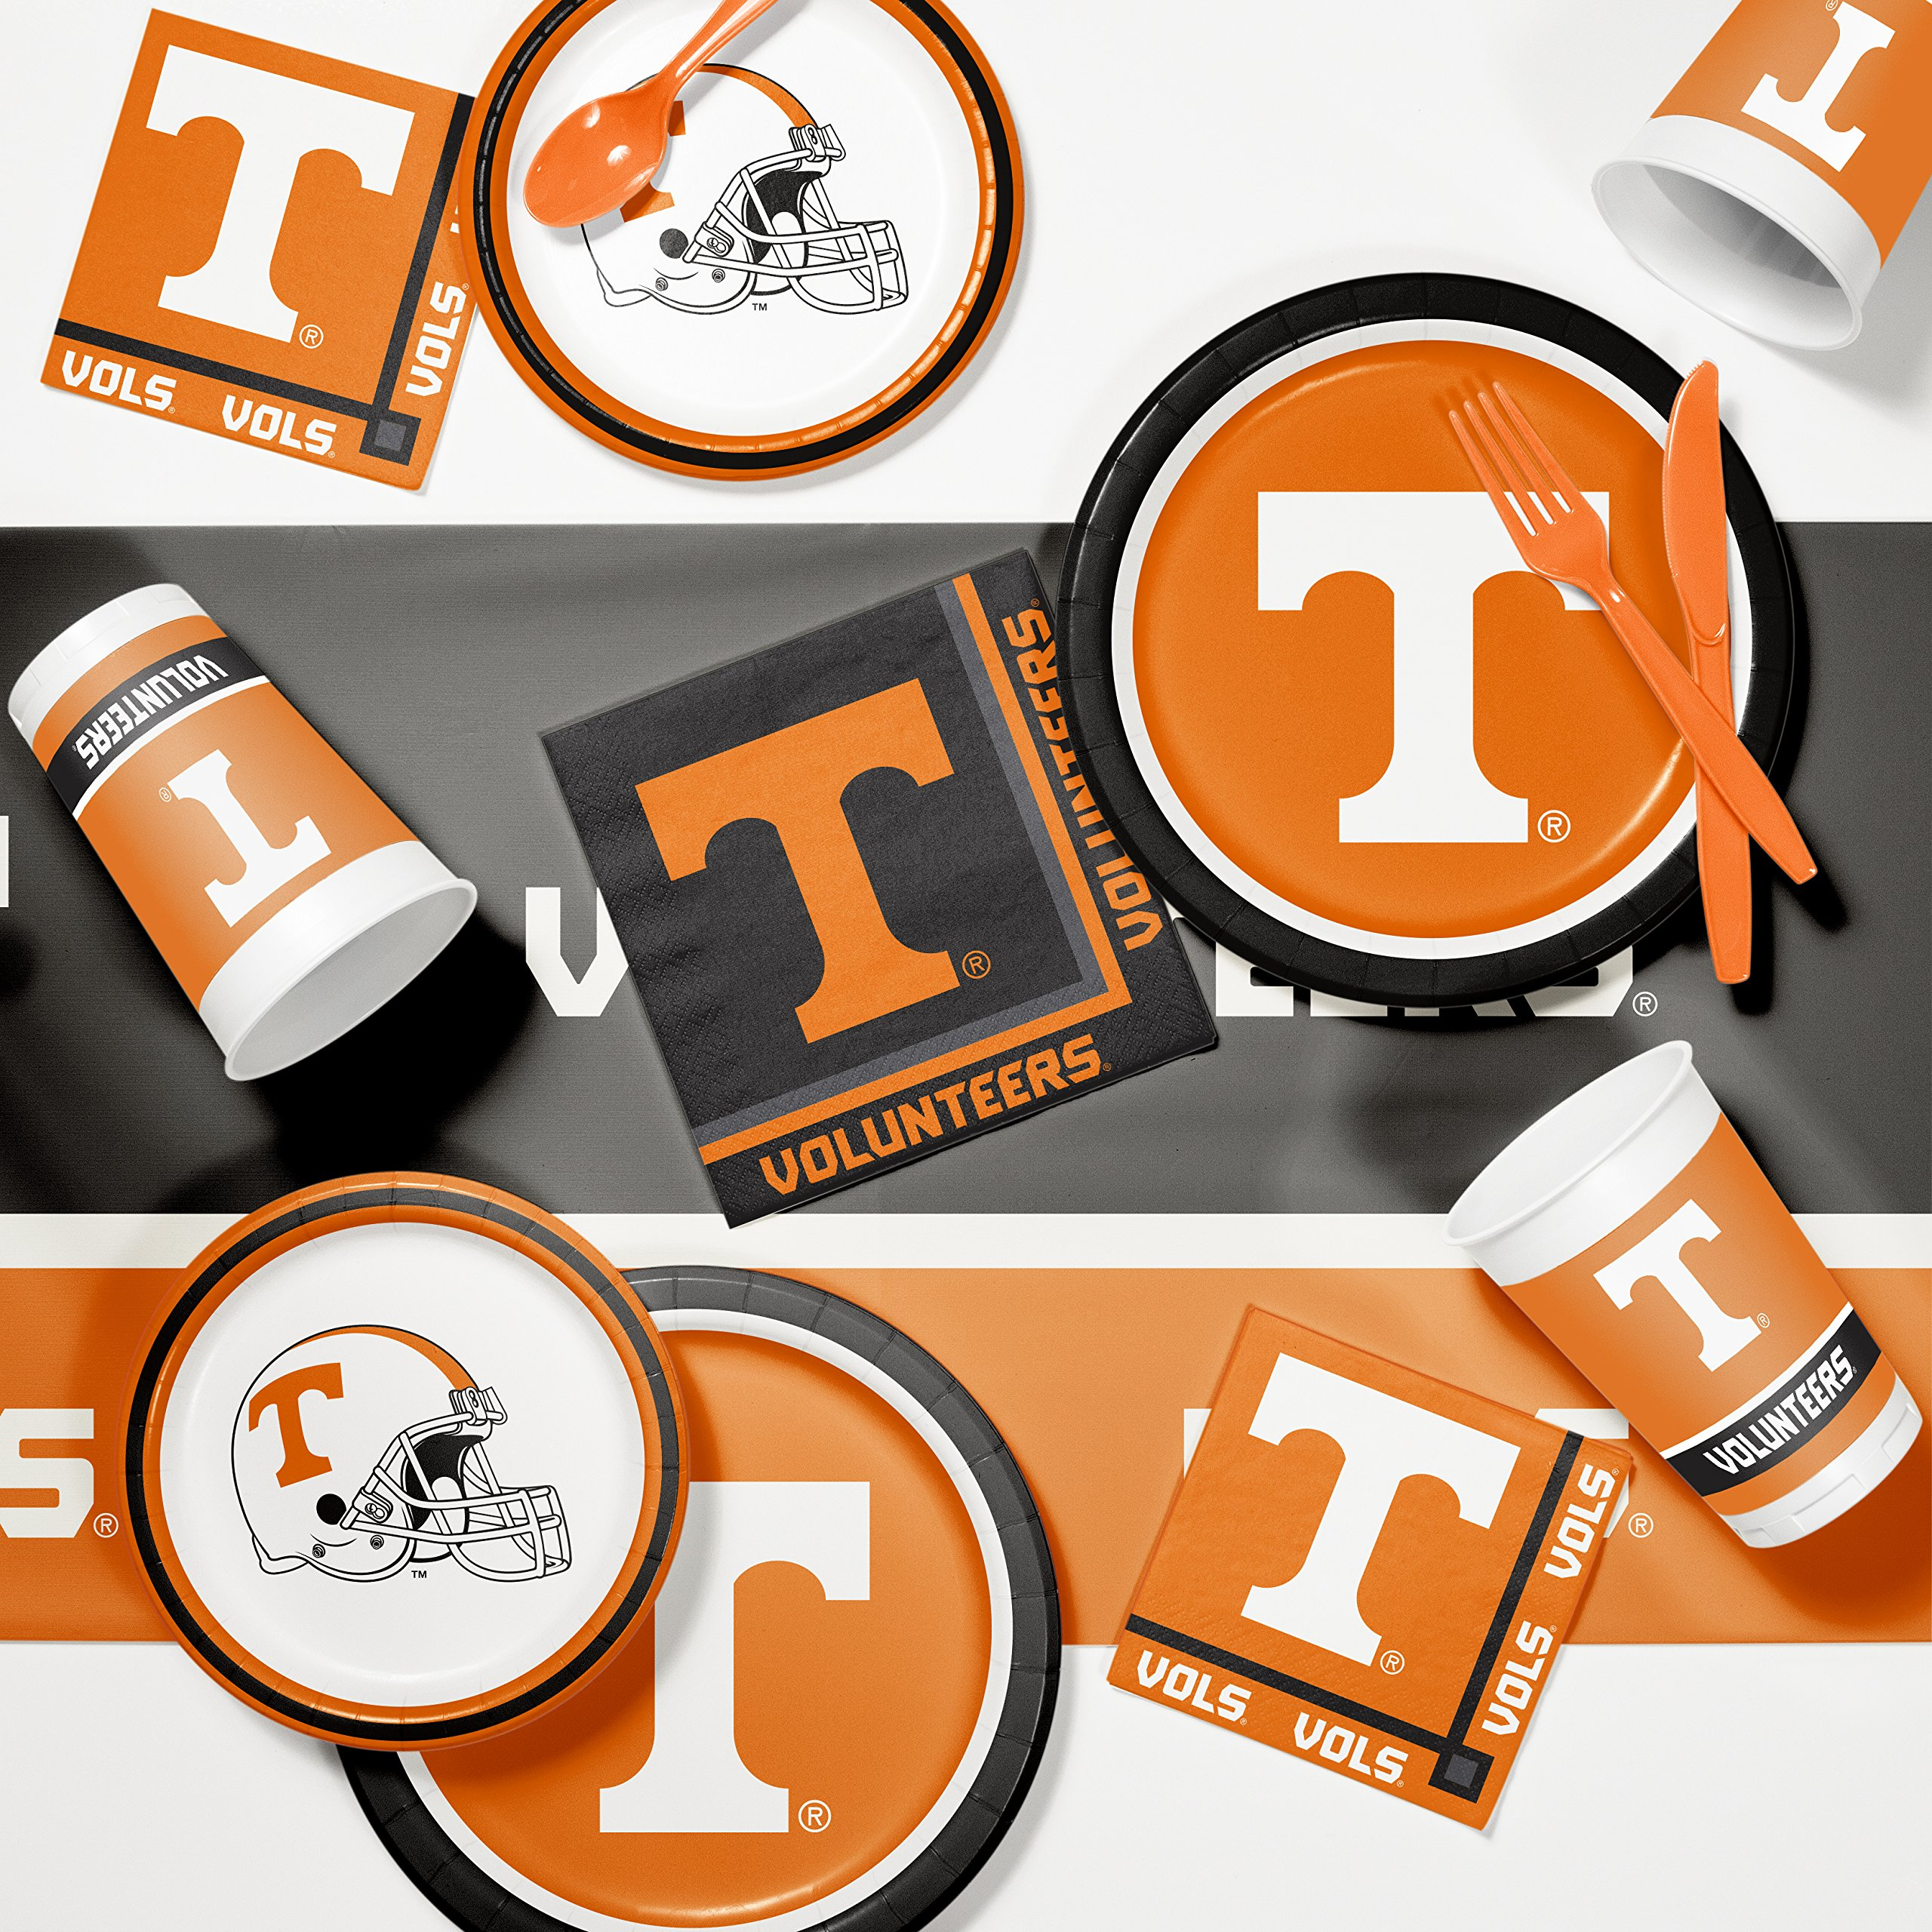 NCAA University Tennessee Game Day Party Supplies Kit by NCAA (Image #1)